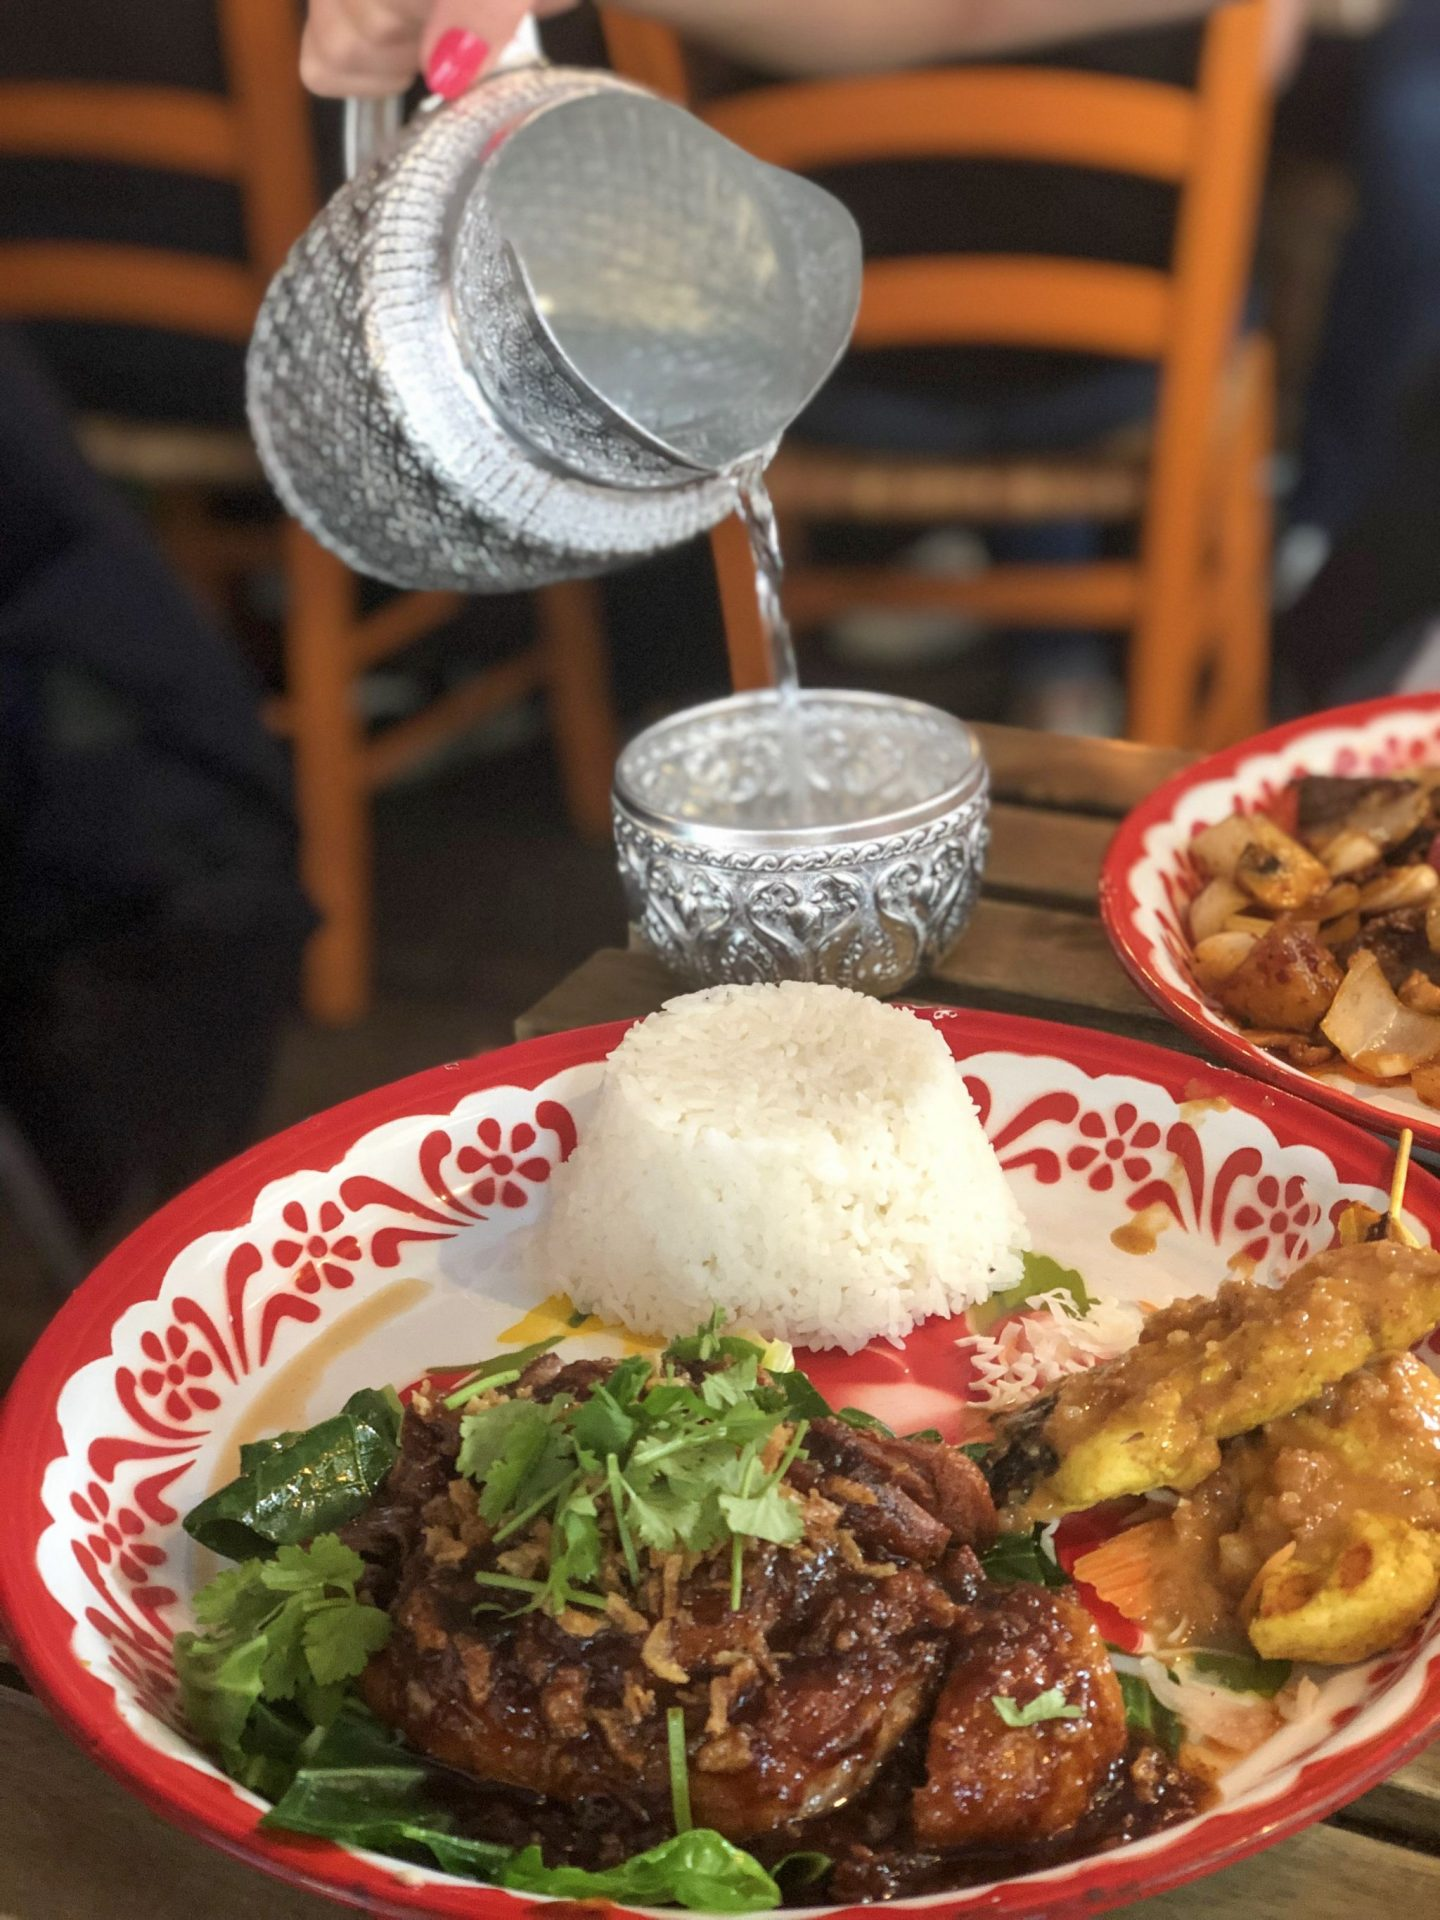 Places to eat in Leeds: a dish of tamarind duck with rice